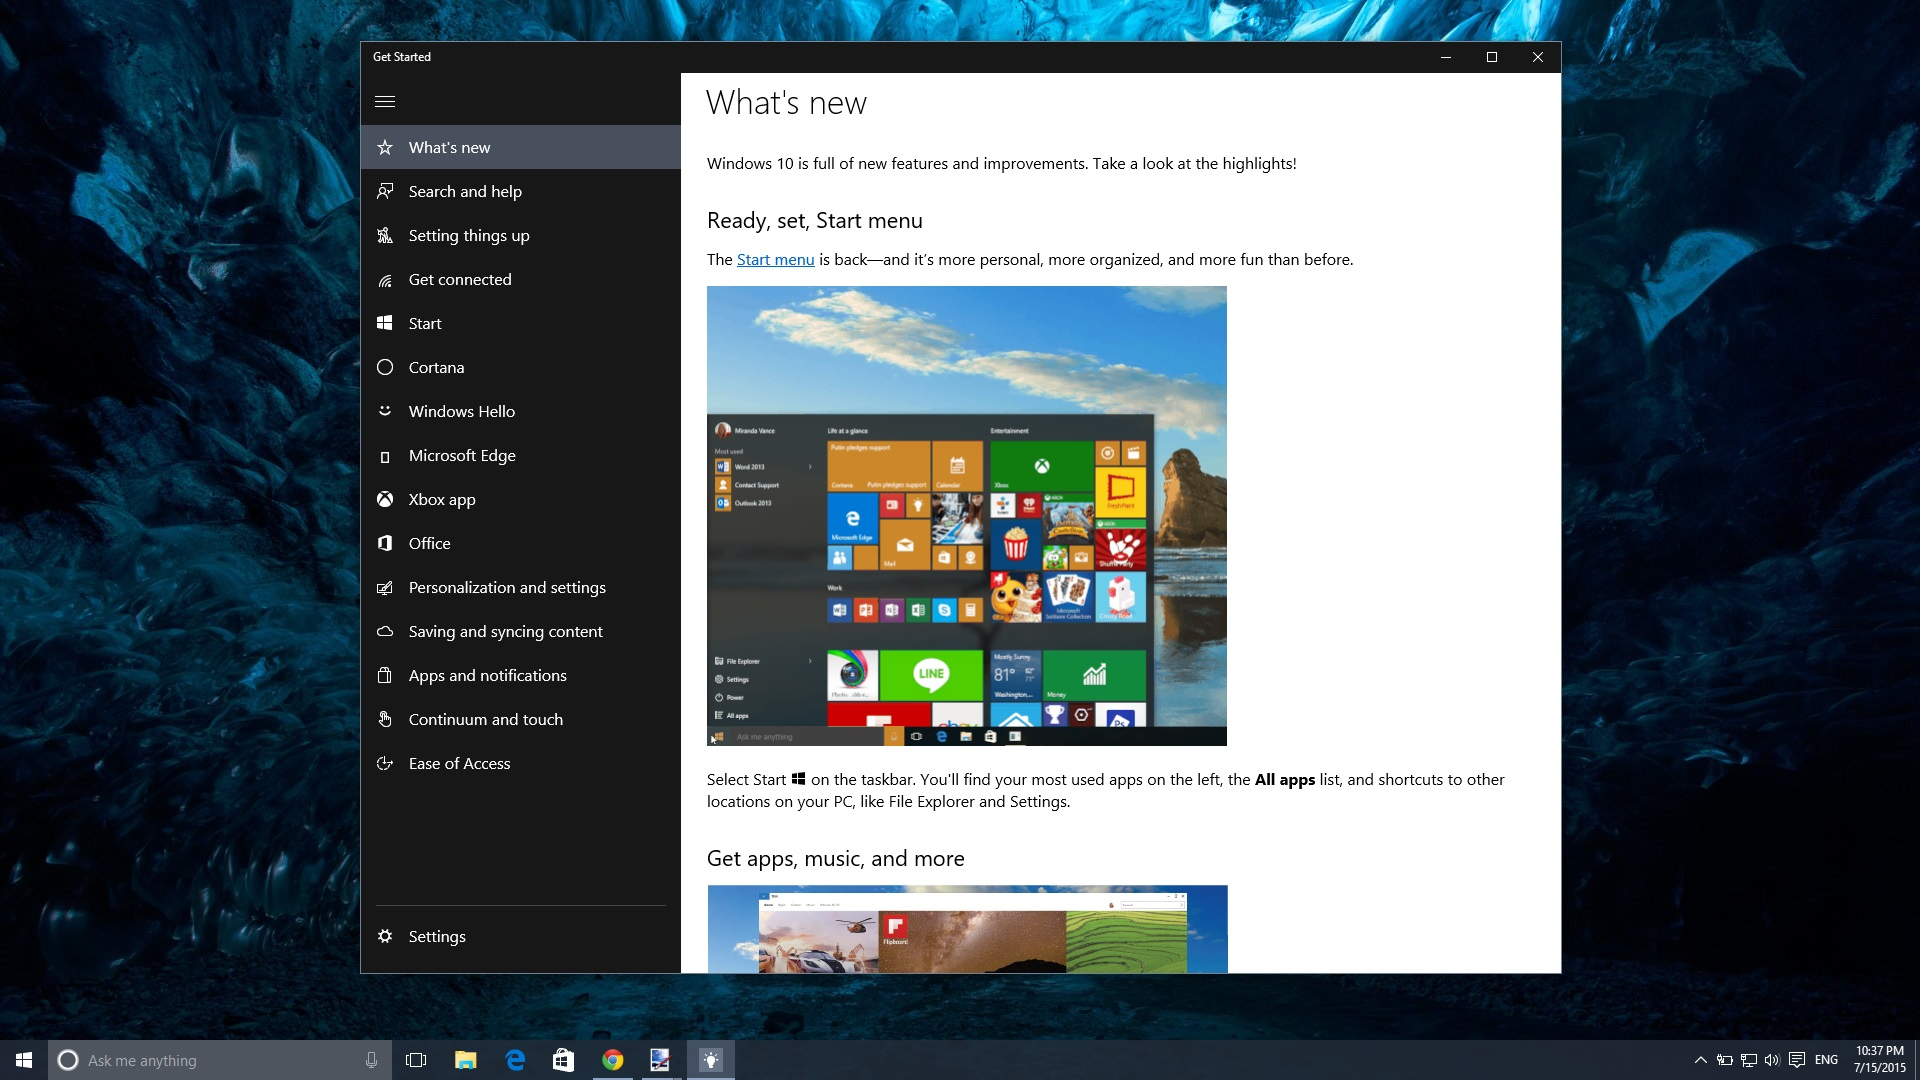 Hands-on with Windows 10 Build 10240 (RTM) 2